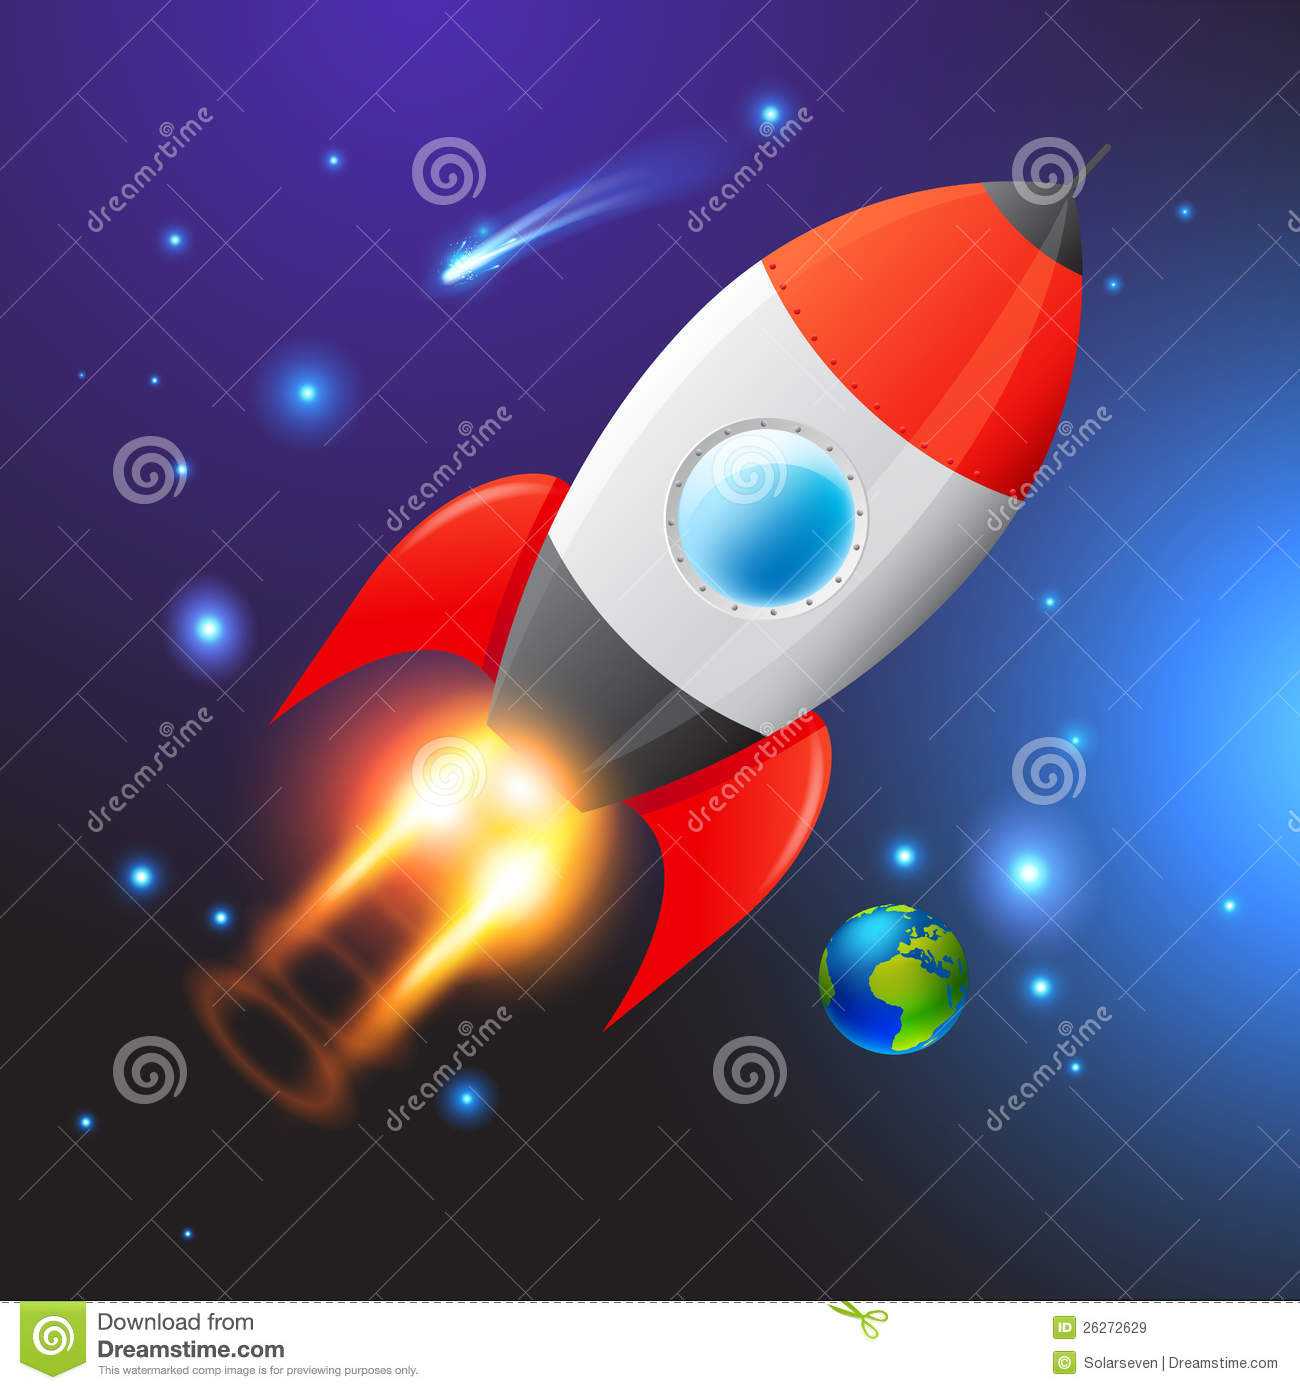 Cute Modern Wallpapers Vector Space Rocket Royalty Free Stock Images Image